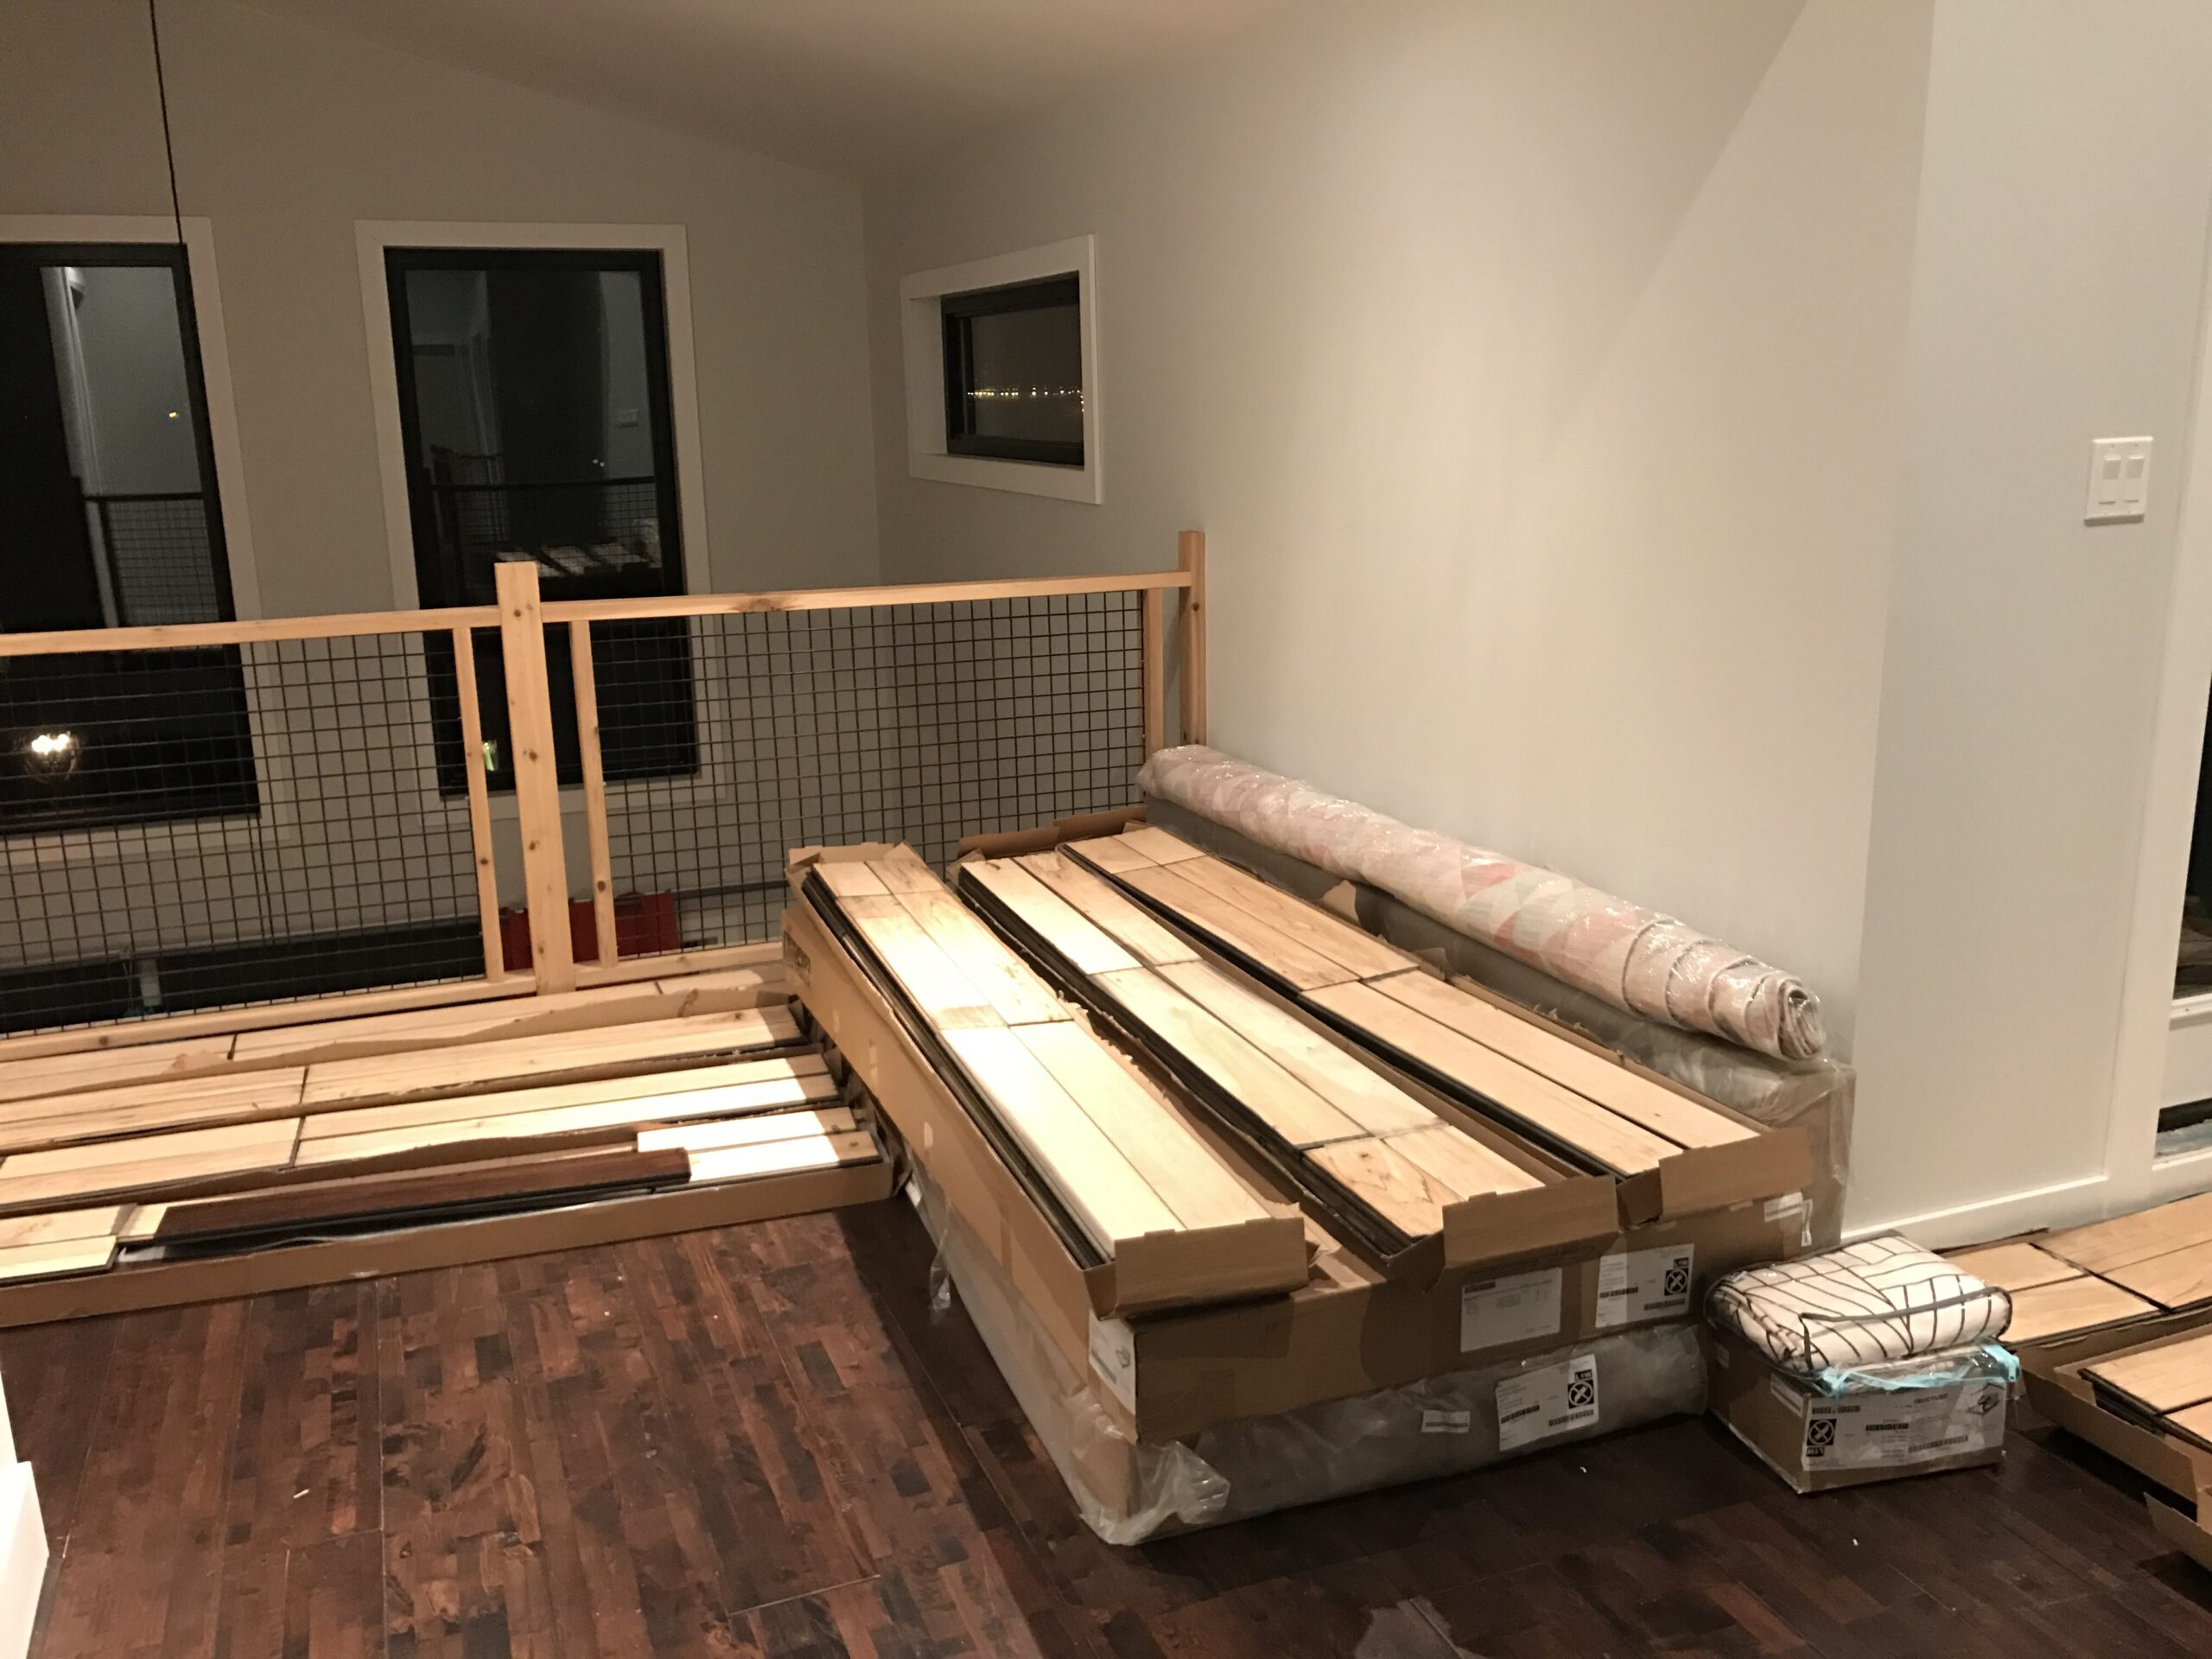 Hardwood for the dream bedroom getting acclimatized